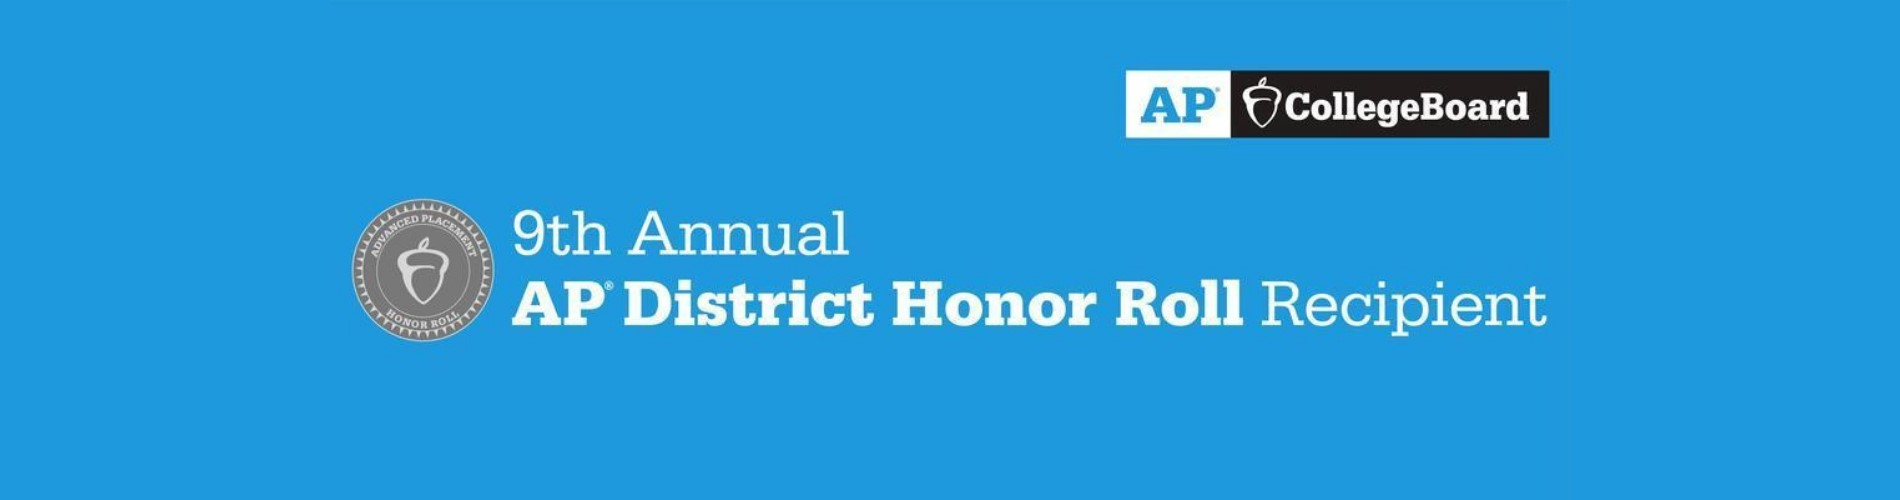 9th Annual District Honor Roll Recipient